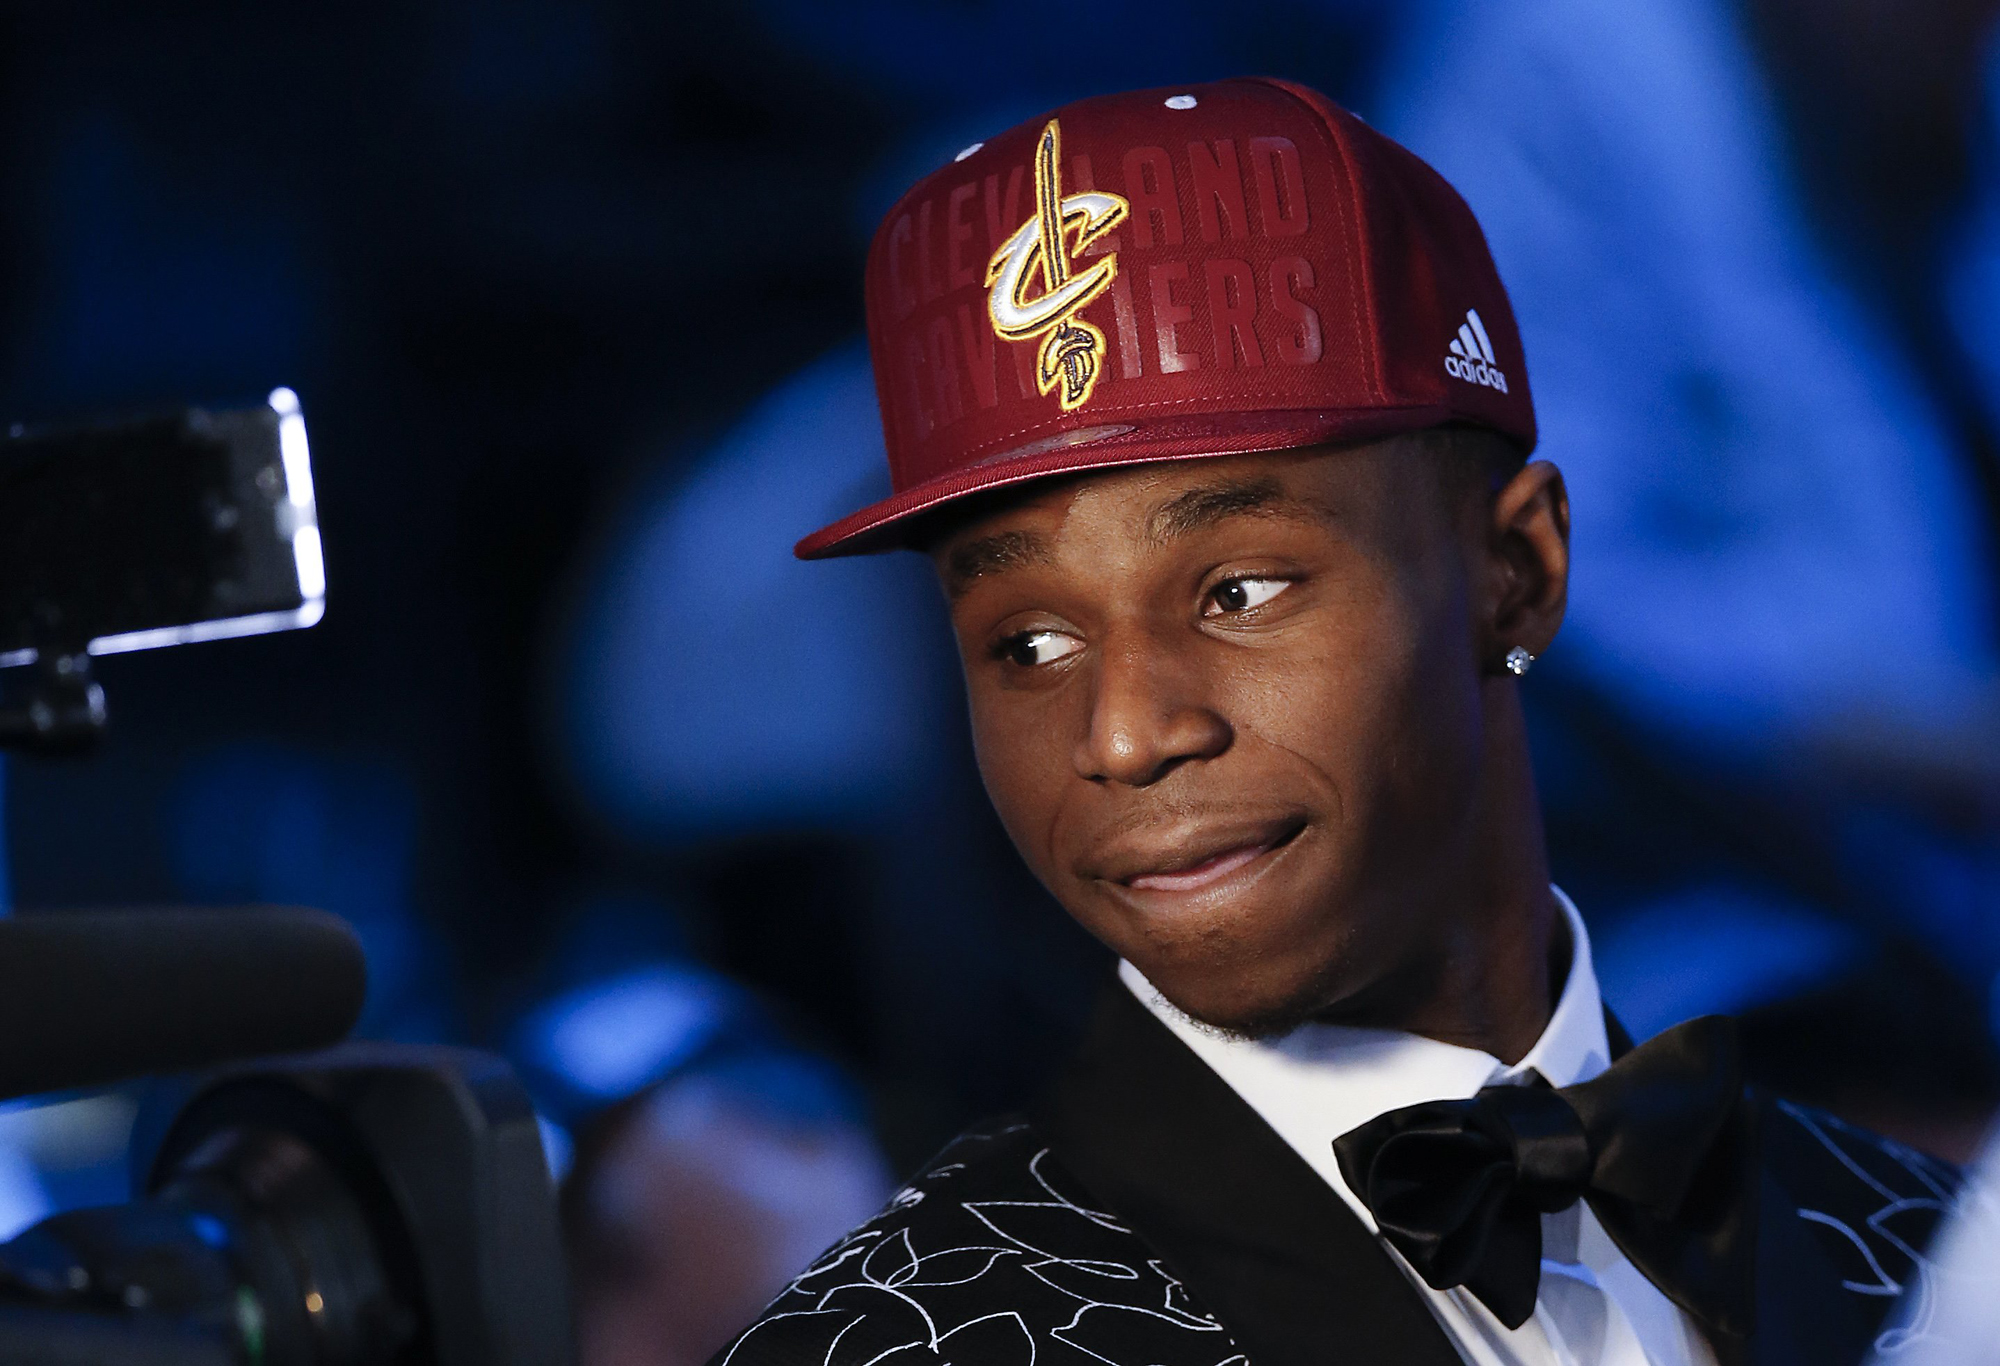 Andrew Wiggins of Kansas stops for a television interview after being selected by the Cleveland Cavaliers as the number one pick in the 2014 NBA draft, June 26, in New York.